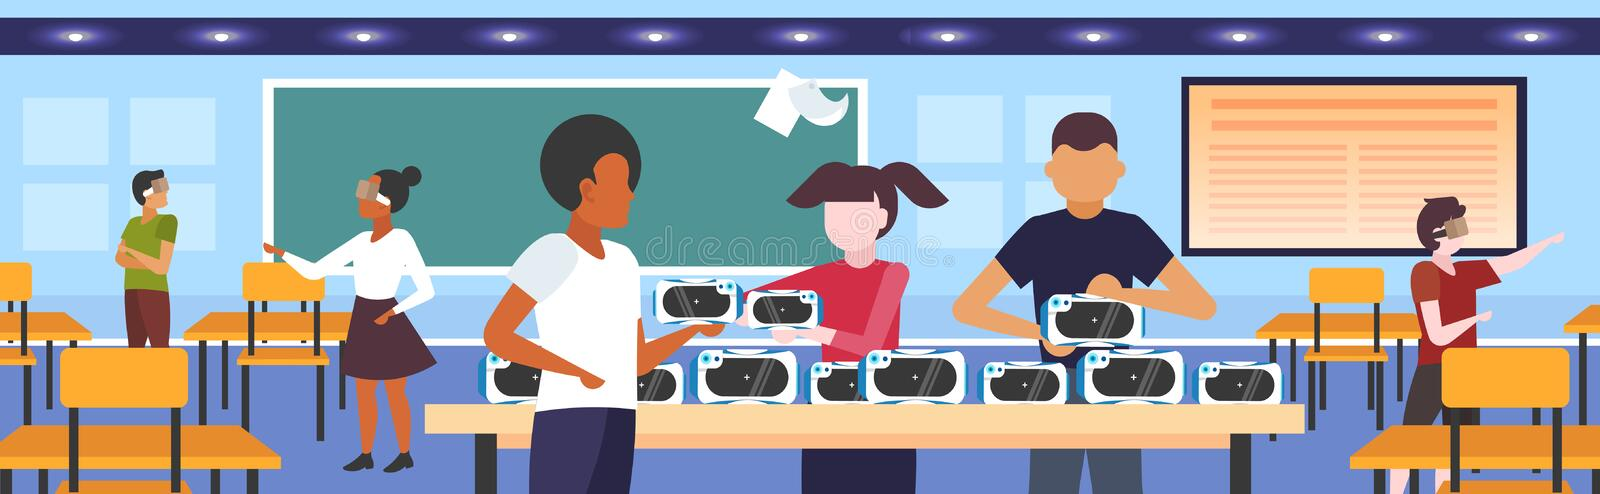 Students testing 3d glasses mix race teenagers wearing virtual reality digital goggles headset vision vr technology royalty free illustration